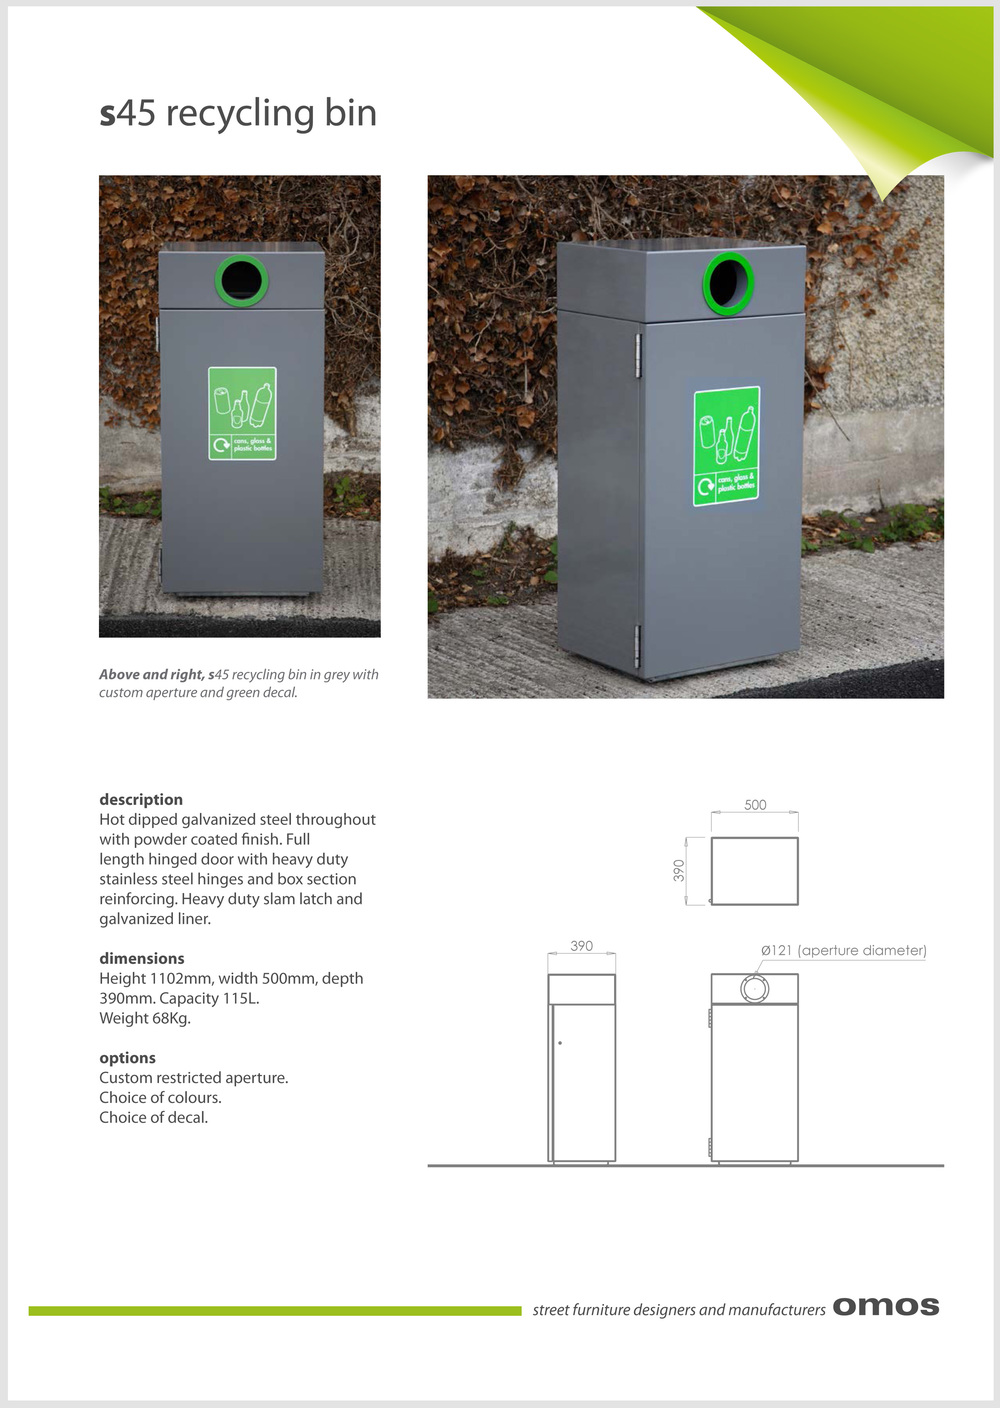 s45 recycling bin data sheet.jpg